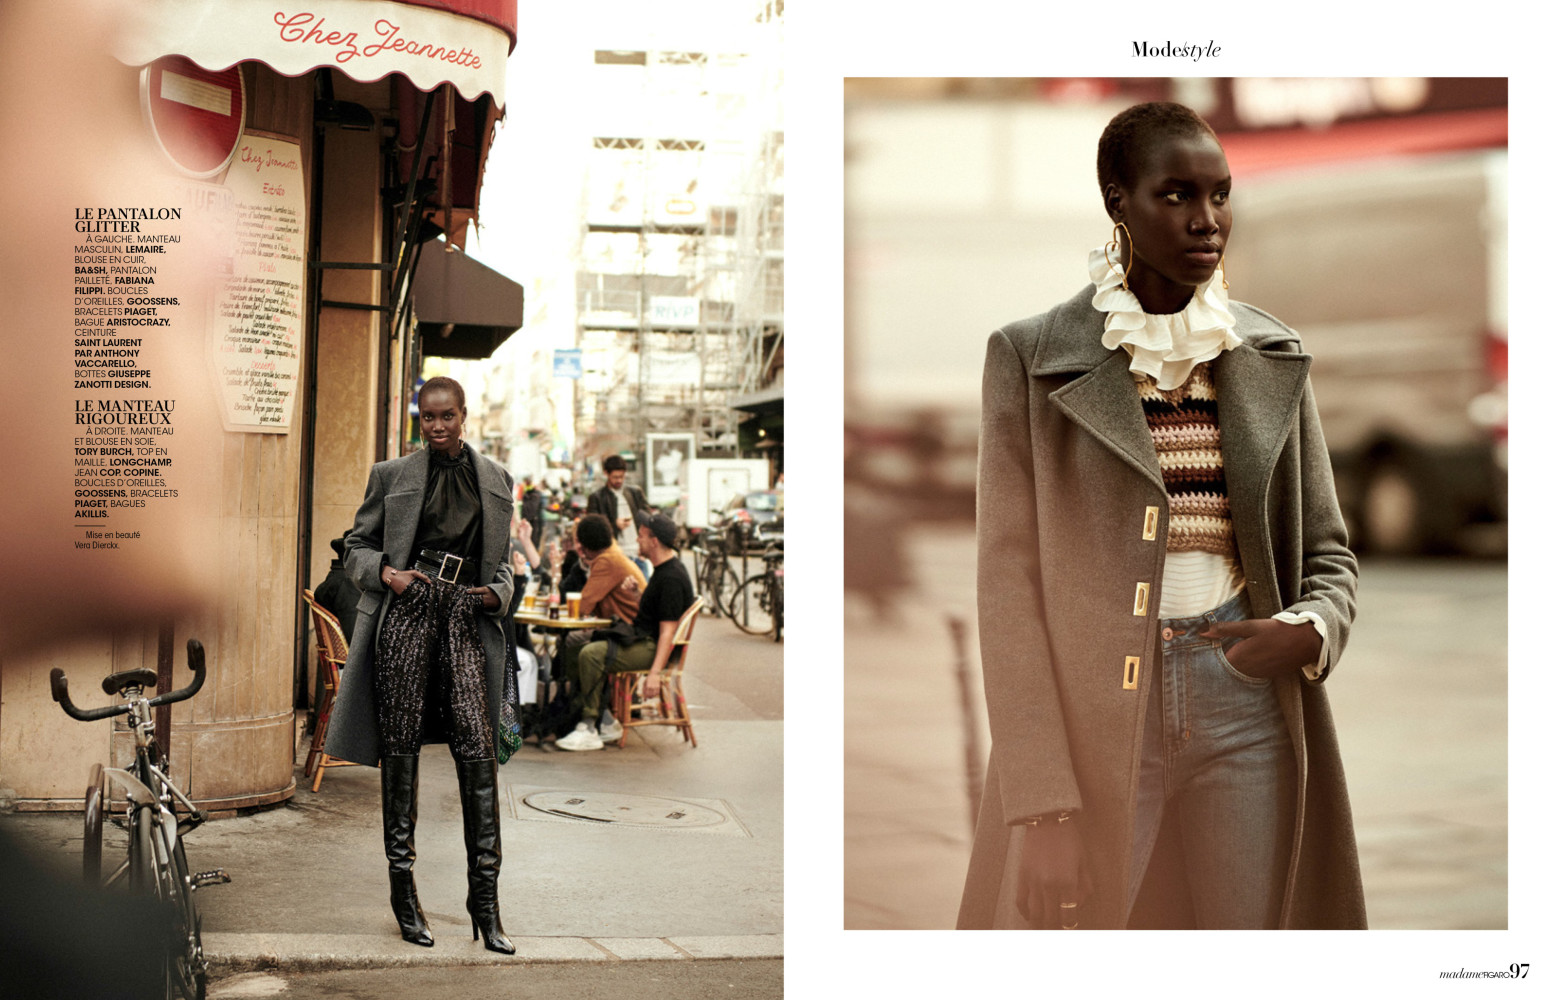 SPOTTED: EFFETS D'HIVER //NYA FOR MADAME FIGARO